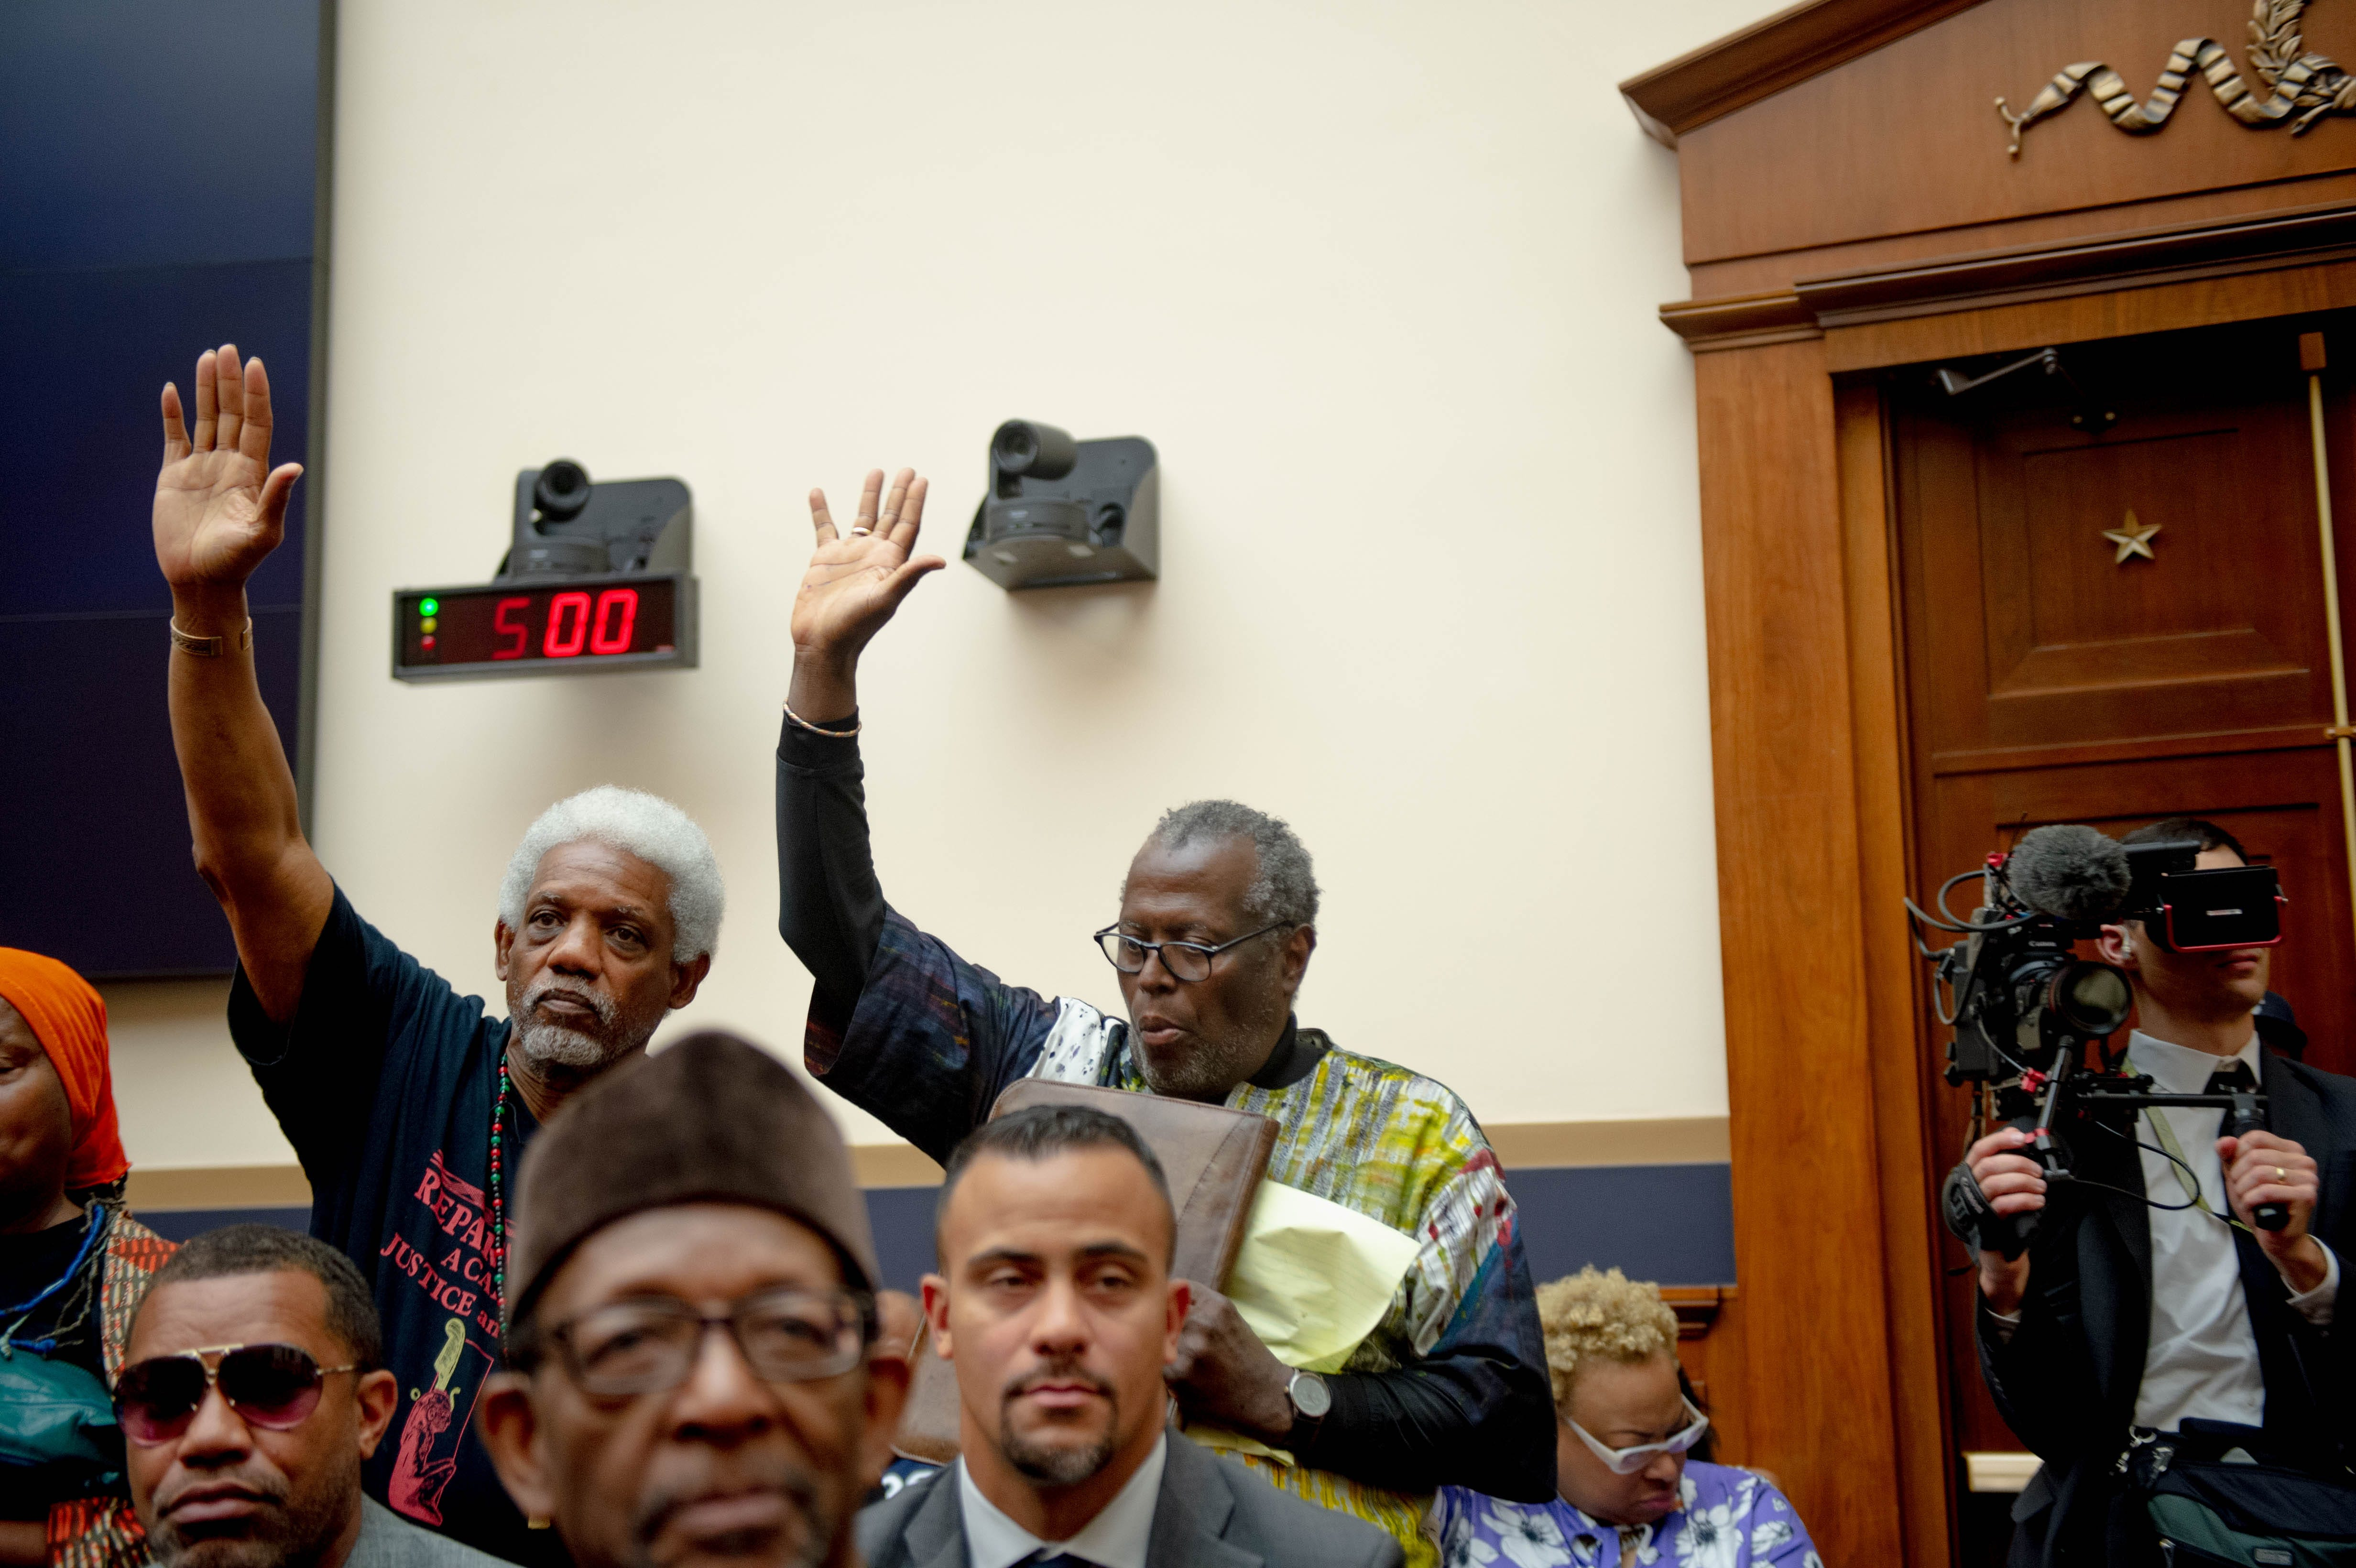 Ta-Nehisi Coates, Danny Glover to testify in Juneteenth House hearing on slavery reparations